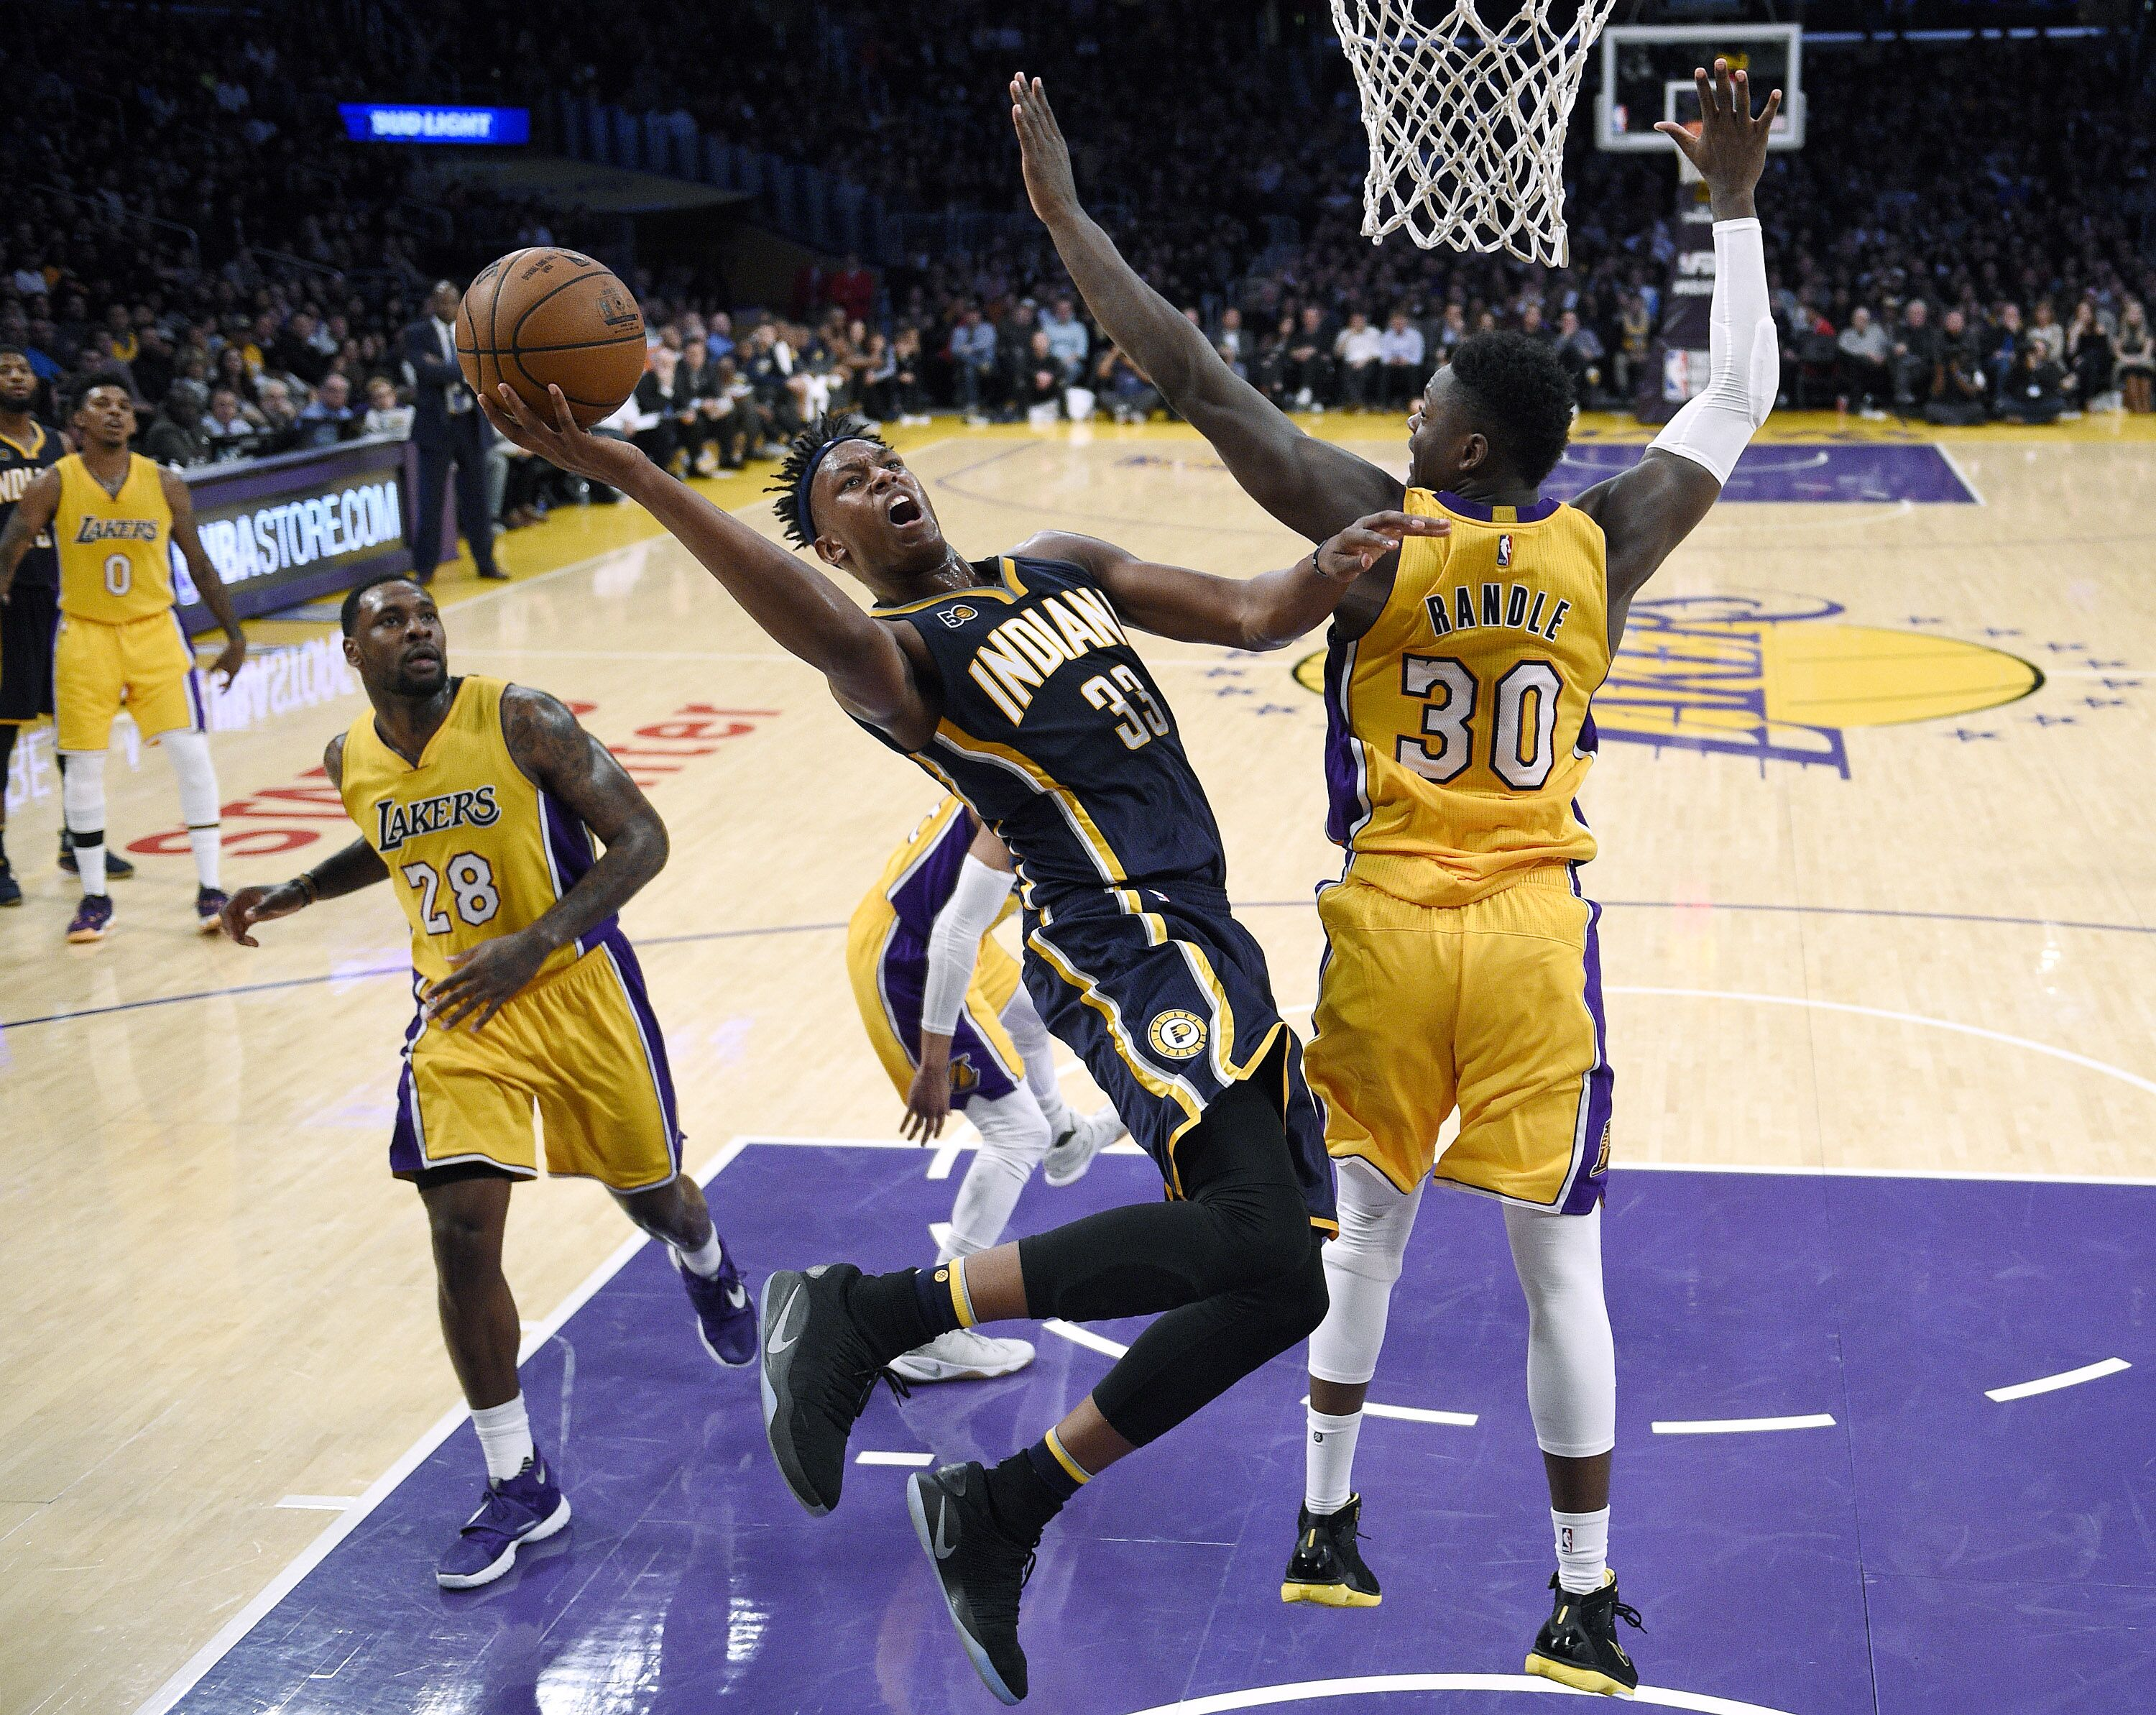 632261476-indiana-pacers-v-los-angeles-lakers.jpg